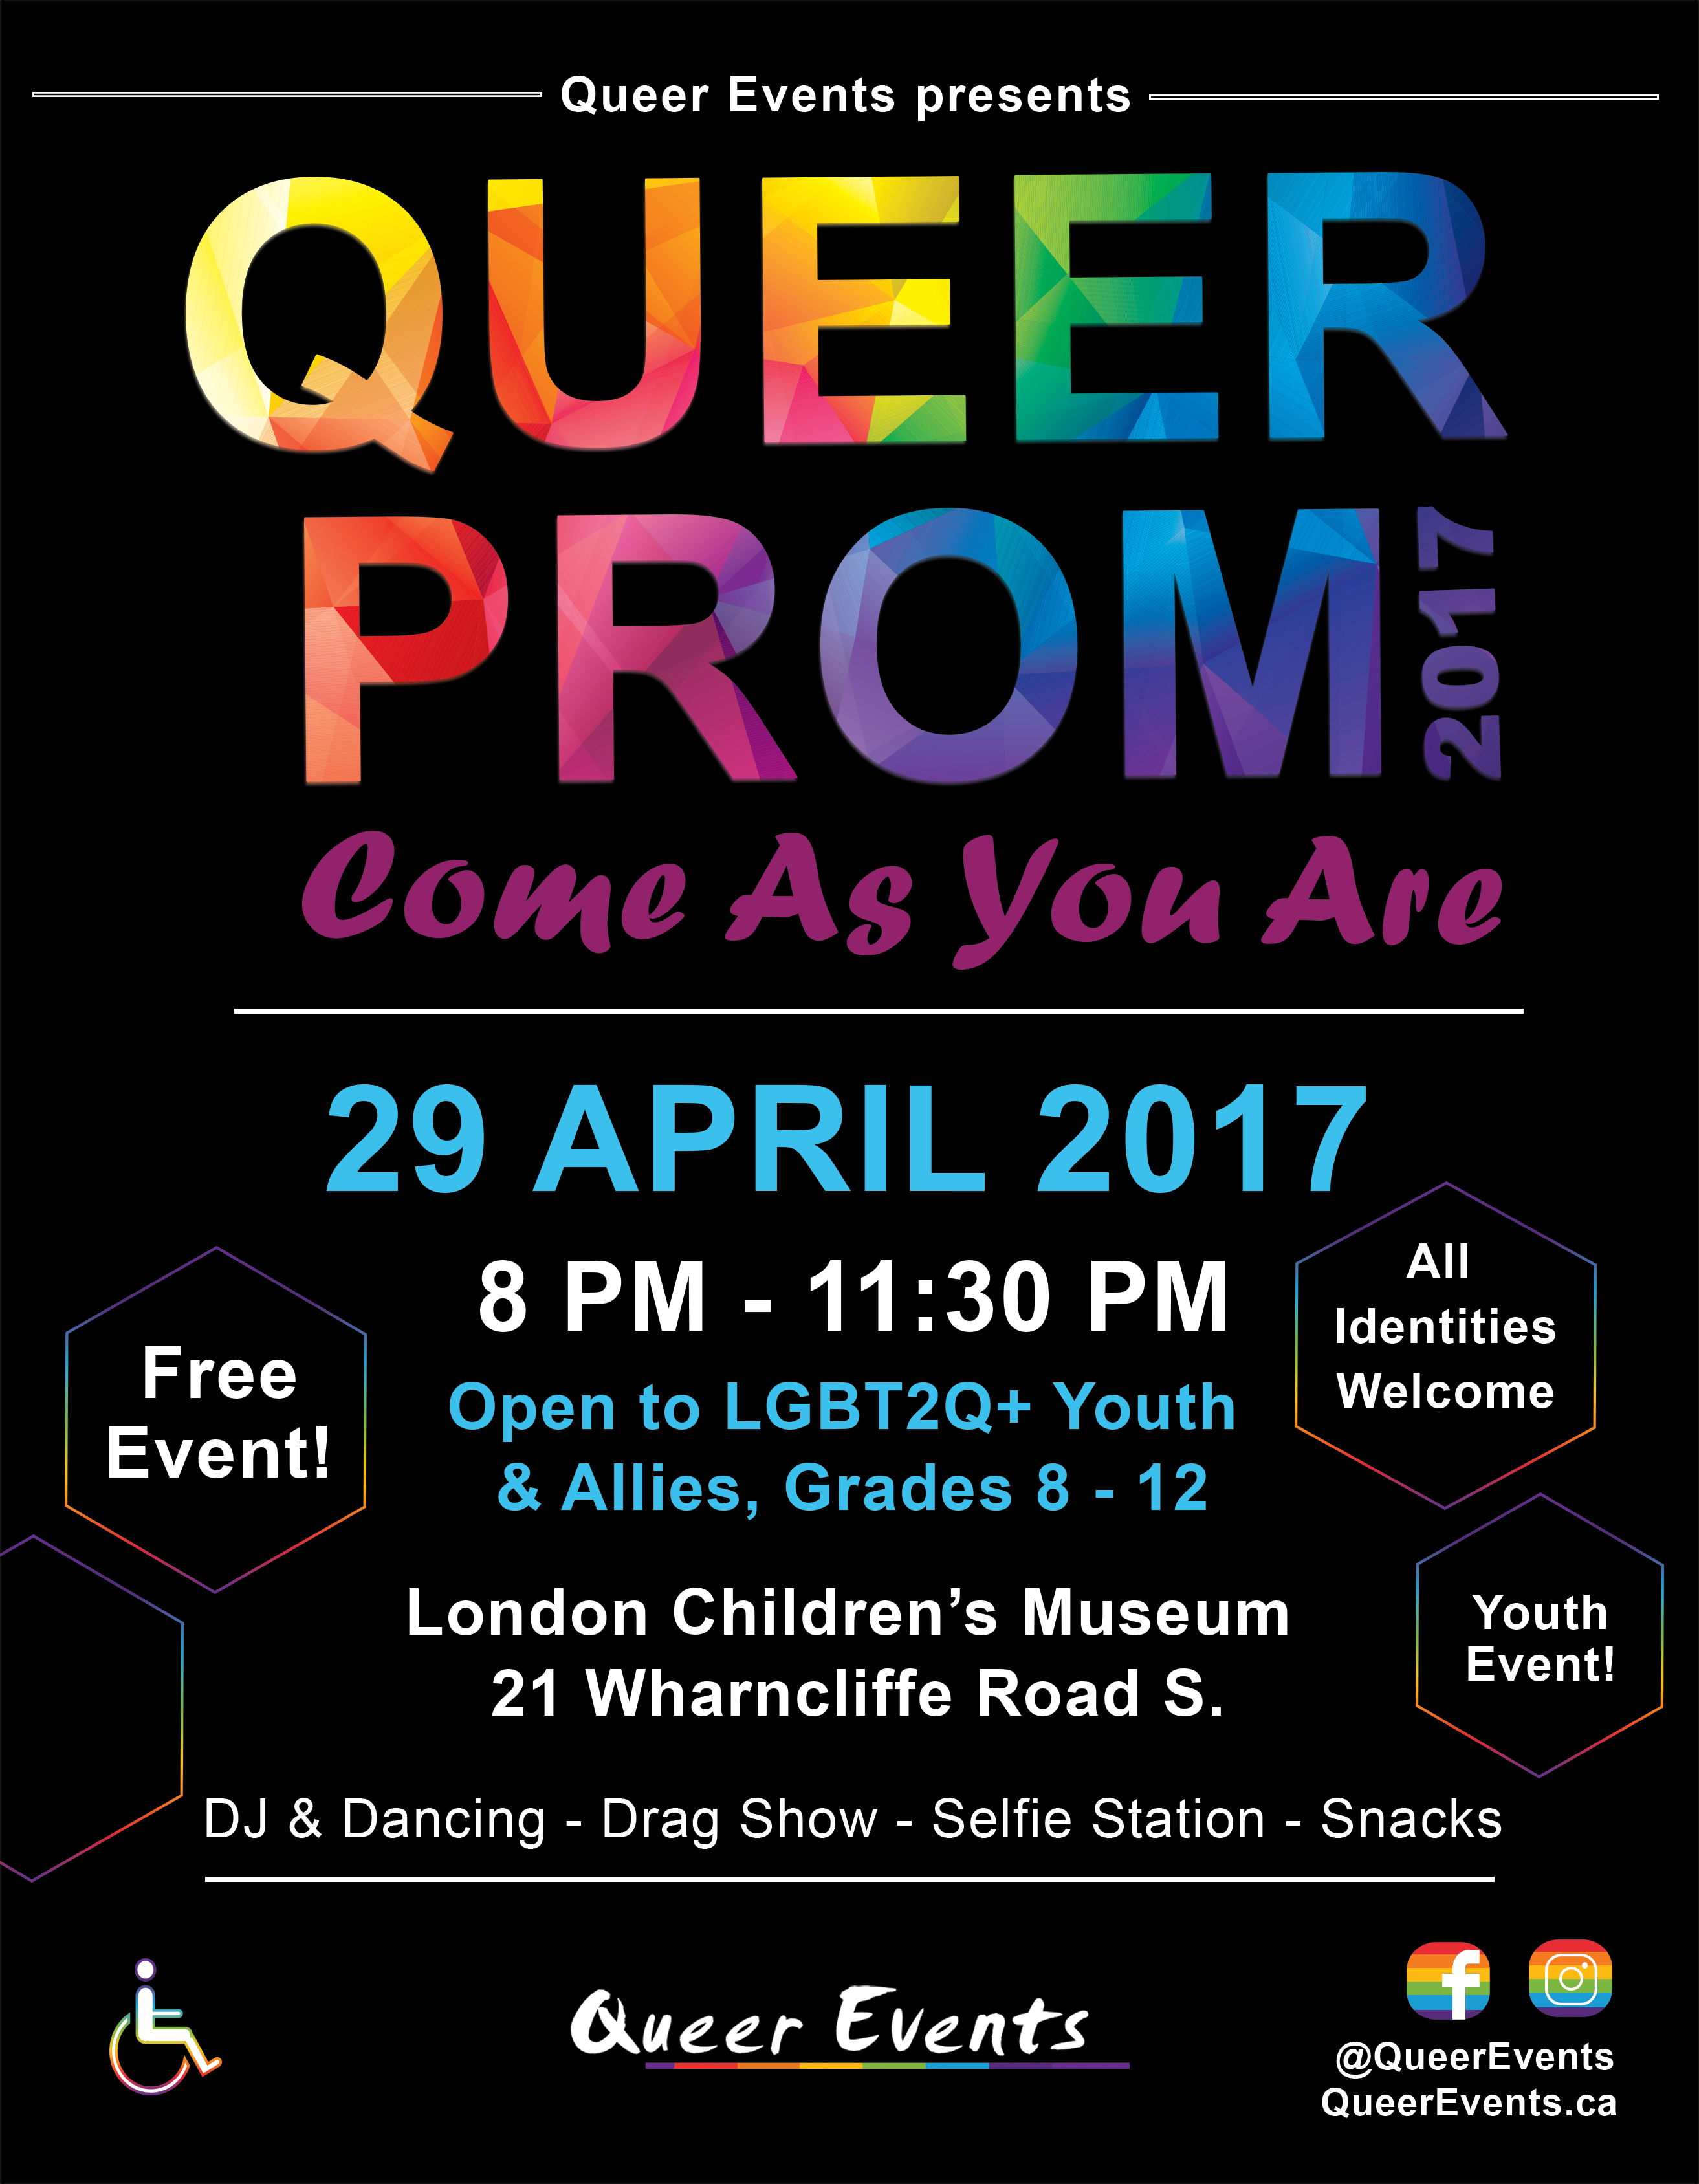 Queer Events - Queer Prom 2017 Image